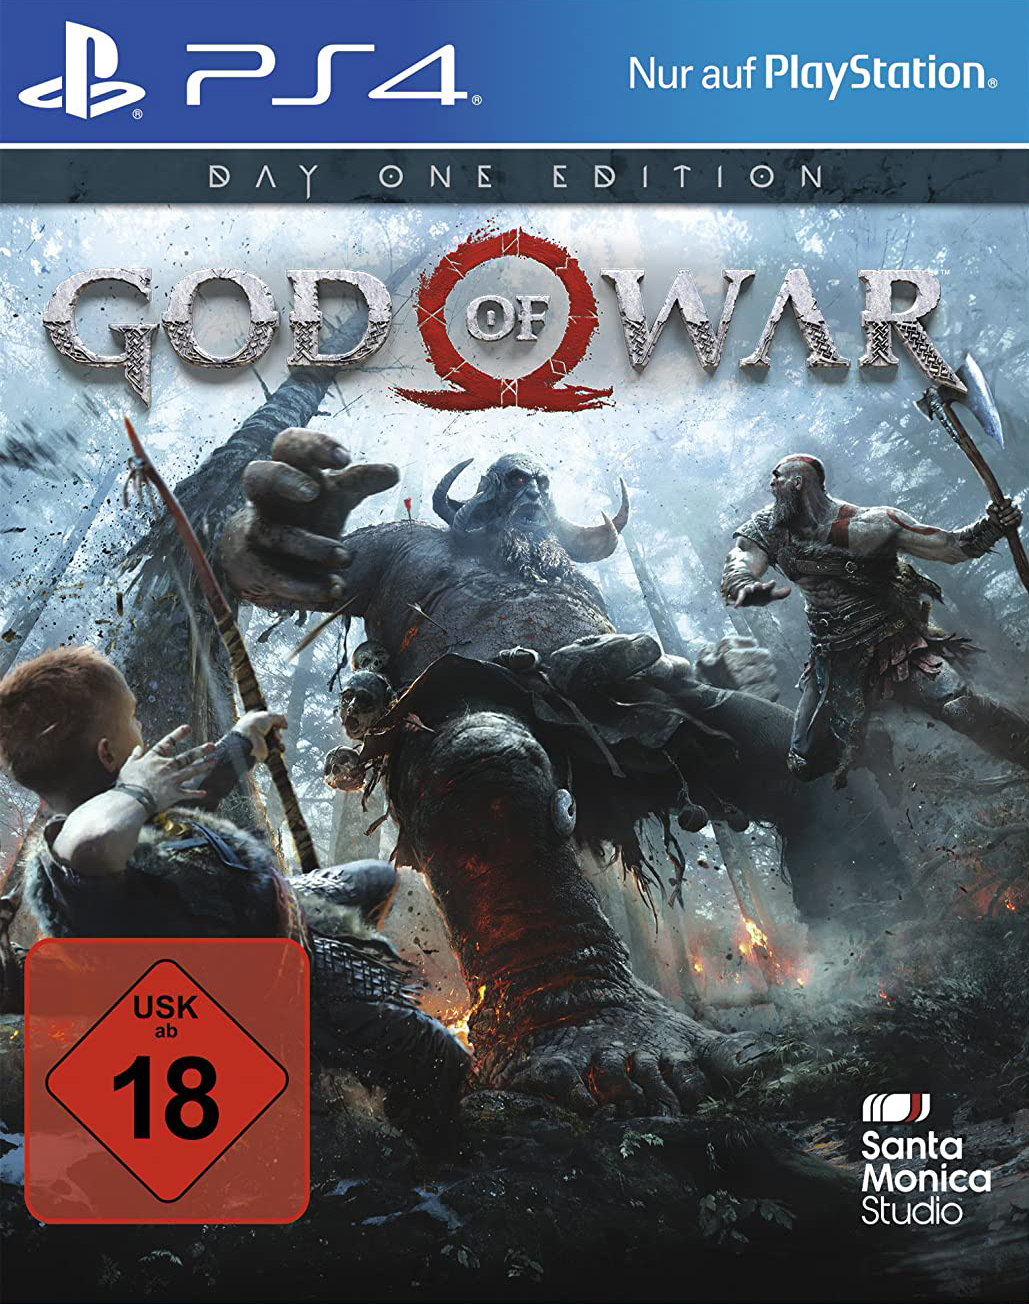 PS4 - God of War #Day One Edition